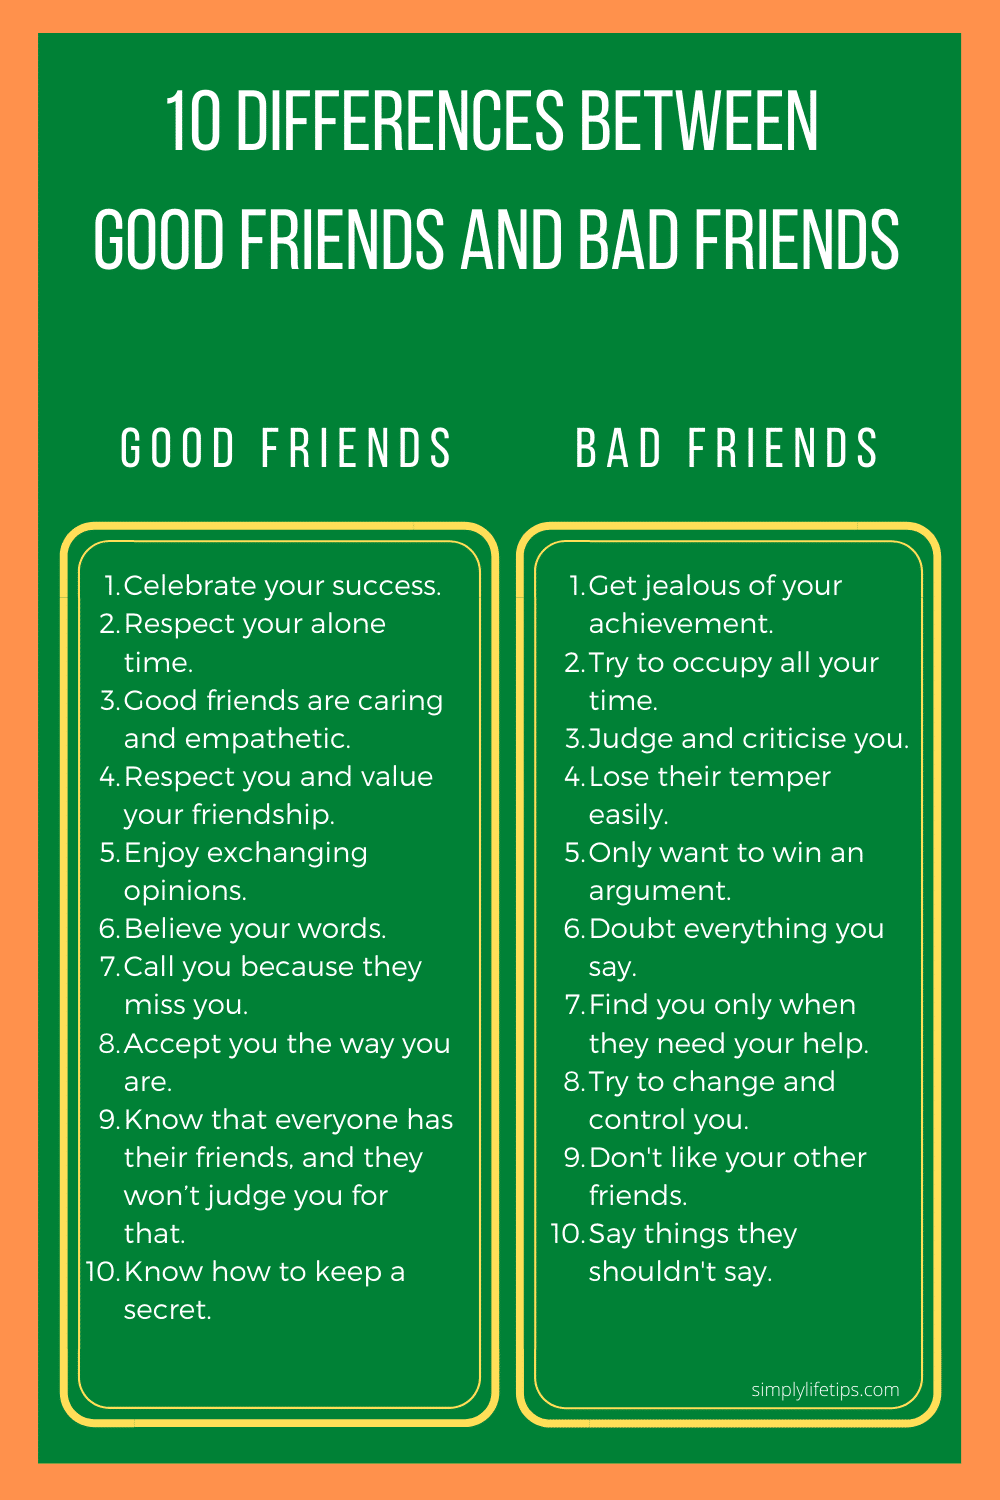 Differences Between Good Friends and Bad Friends